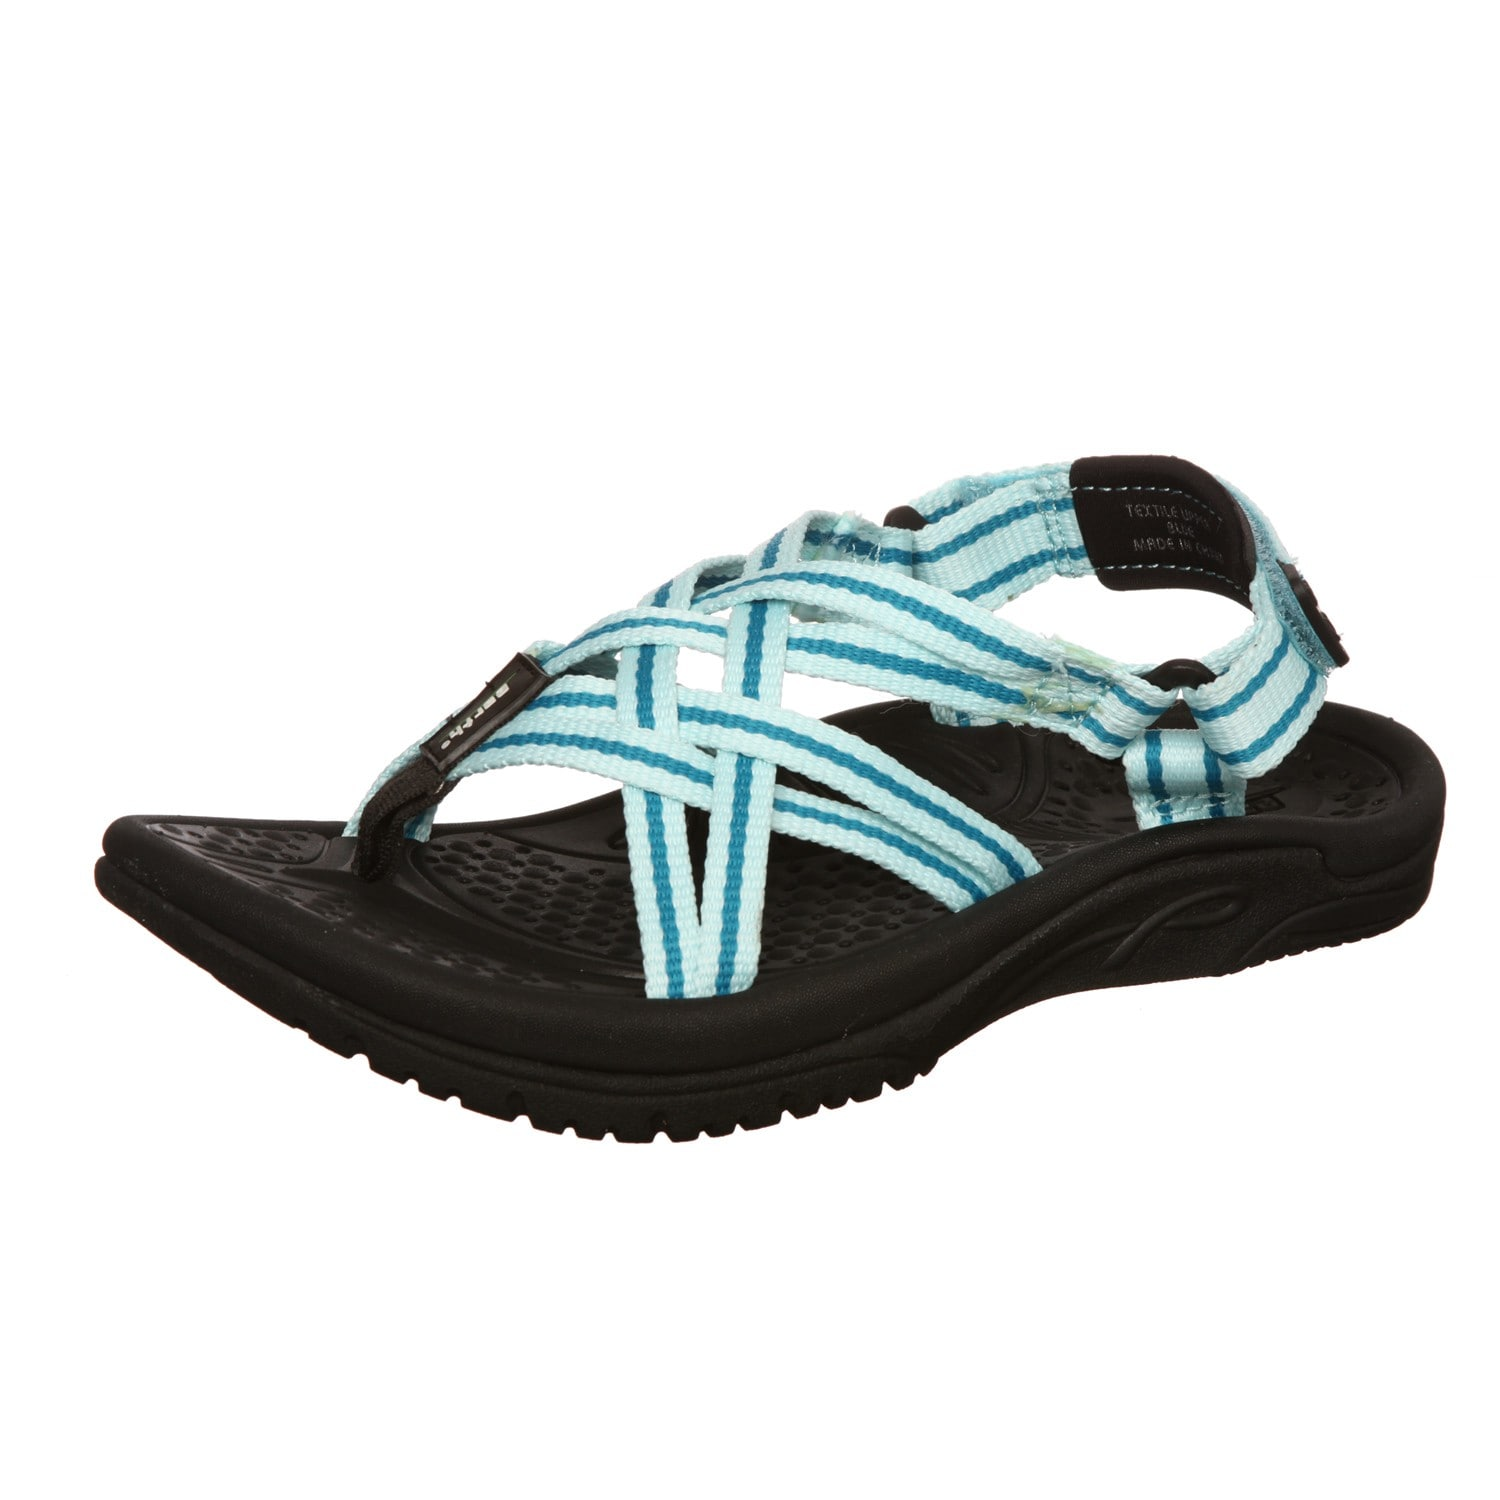 Kalso Earth Shoes | PlanetShoes | Free Shipping & Returns